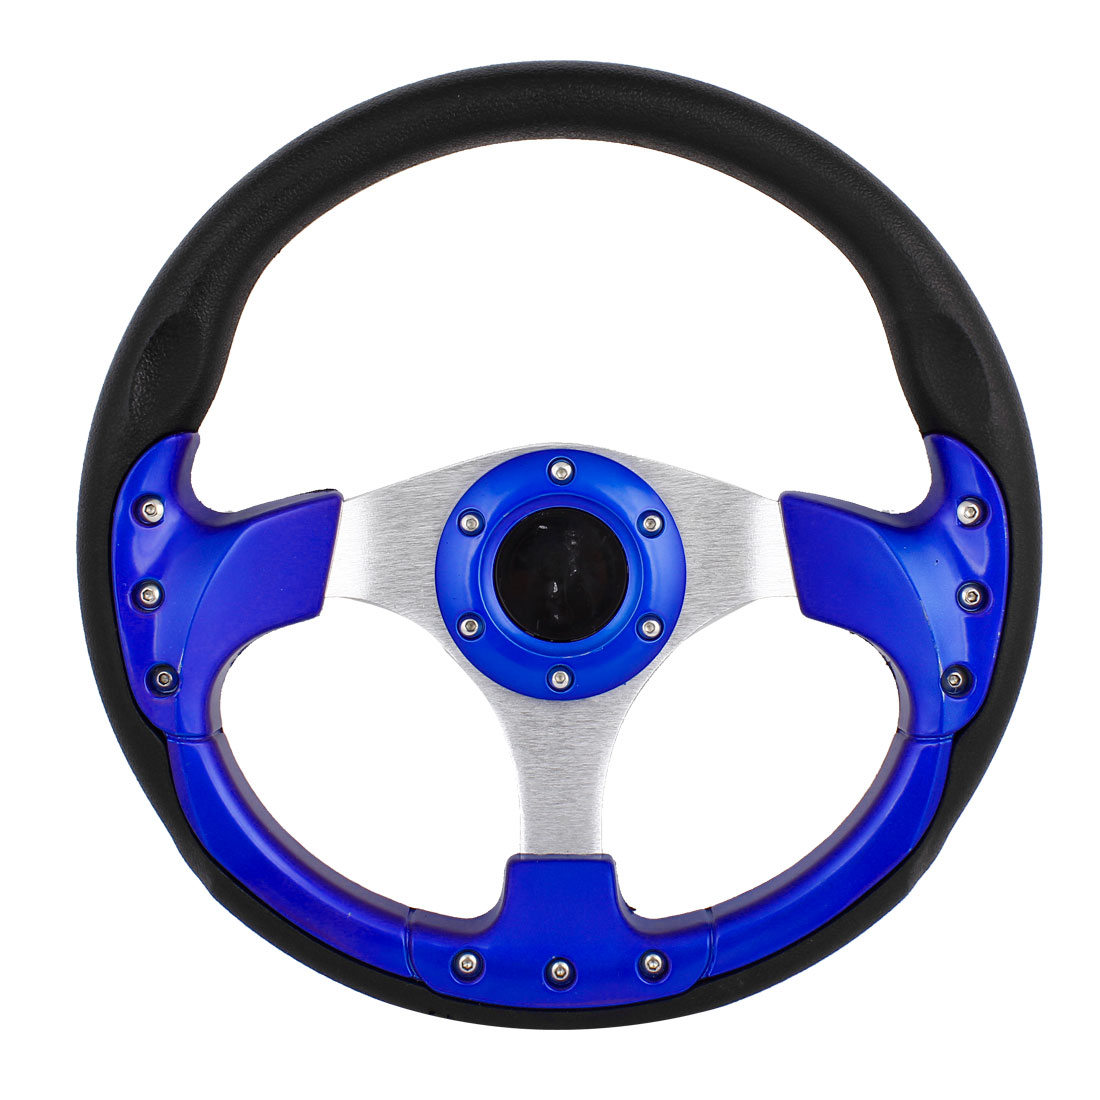 Auto Car Black Blue Plastic Faux Leather Wrapped Steering Wheel 32cm Diameter - image 2 of 2